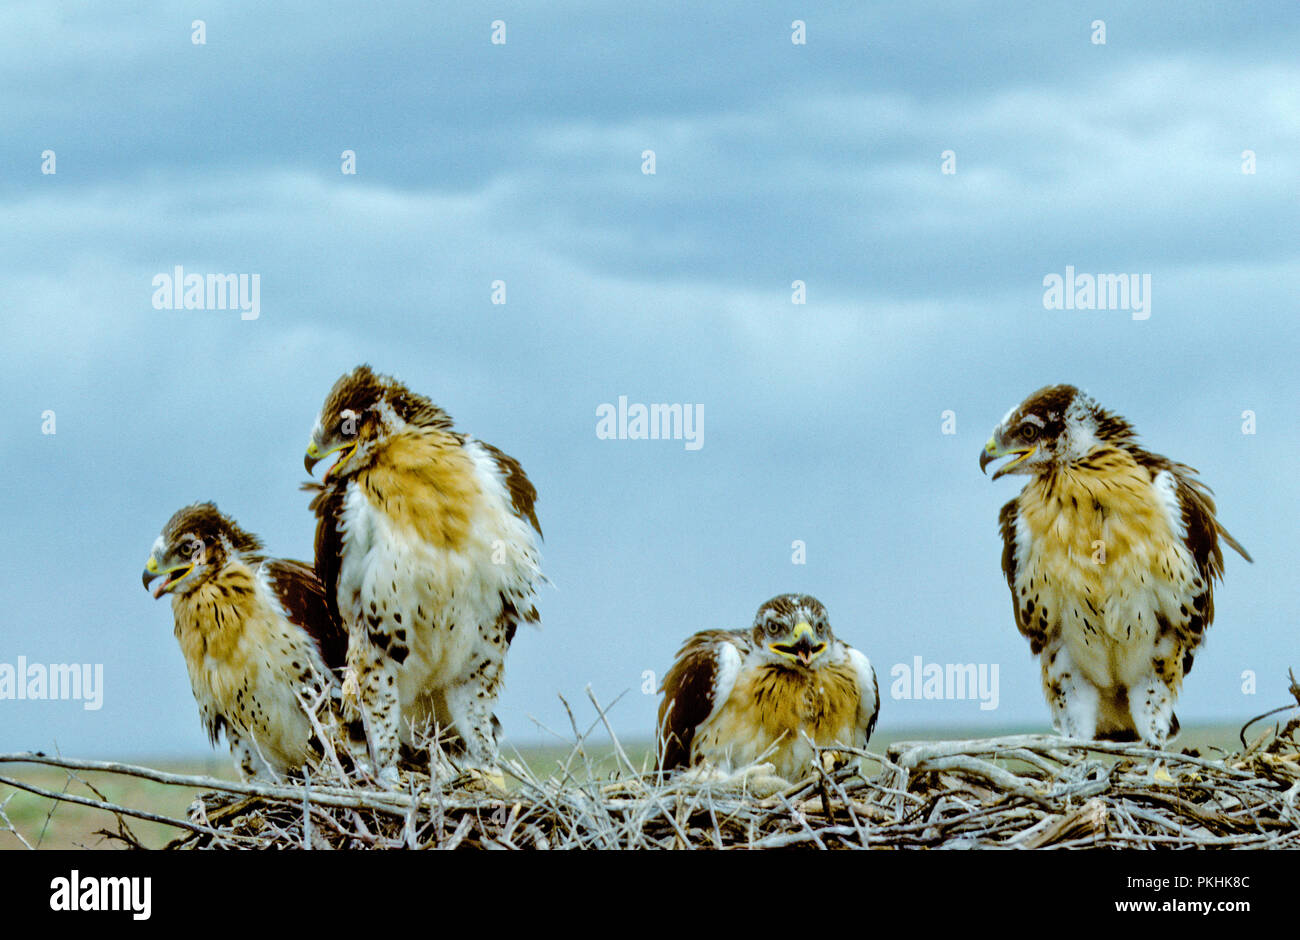 Juvenile ferruginous hawks (Buteo regalis) in nest in the Morley Nelson Snake River Birds of Prey National Conservation Area, Idaho - Stock Image